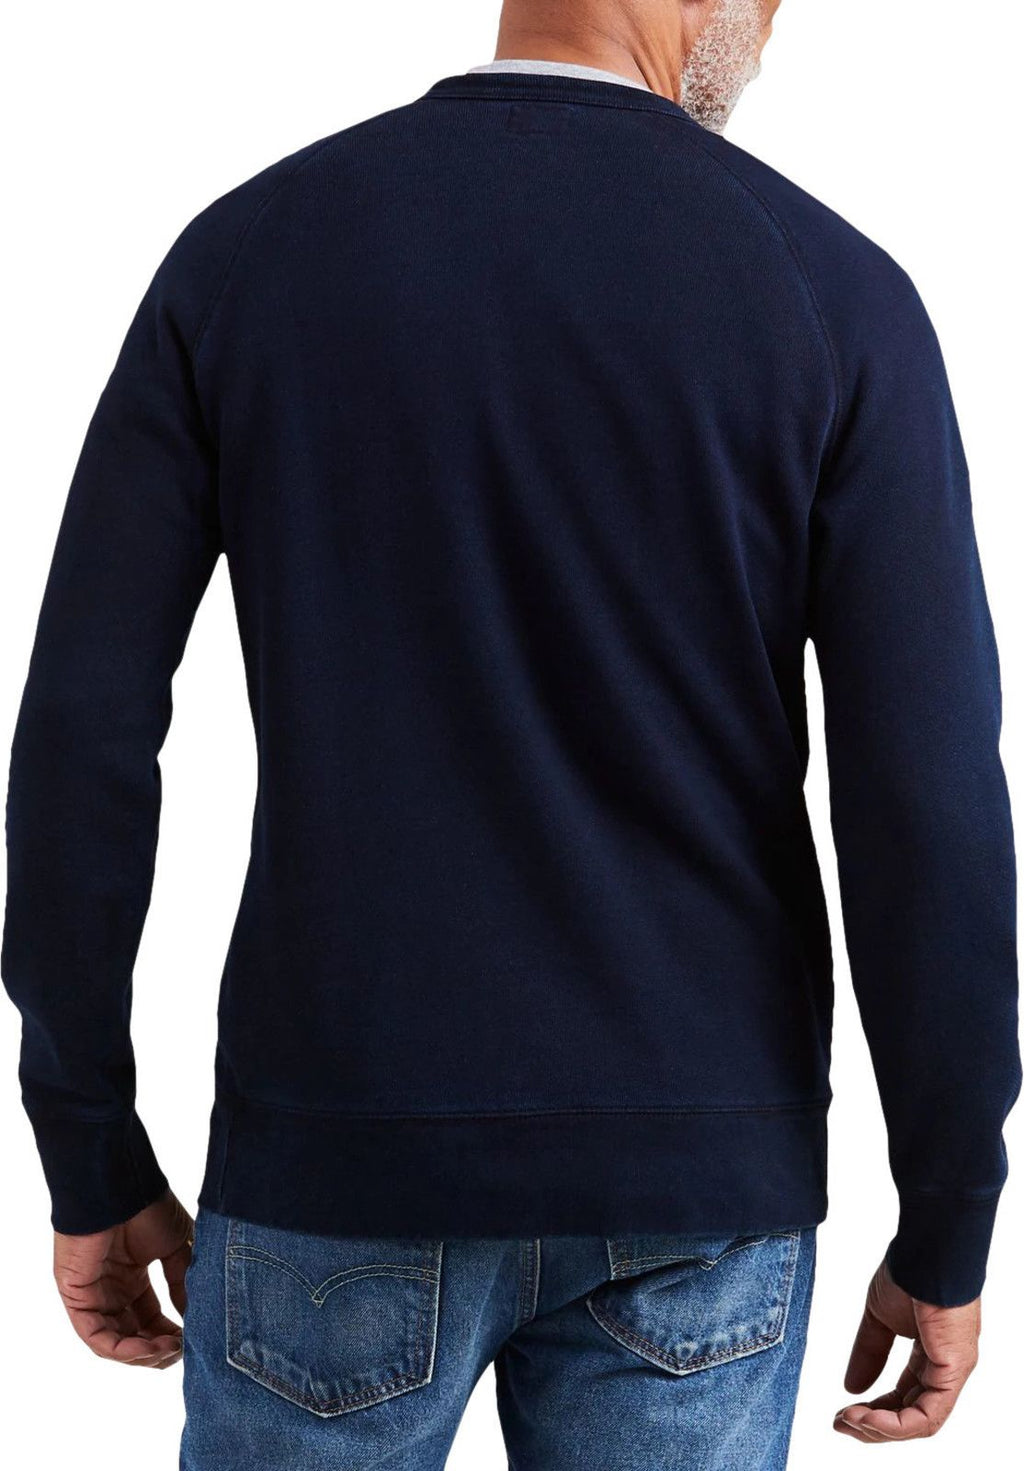 Levi's Original Housemark Sweatshirt Blue